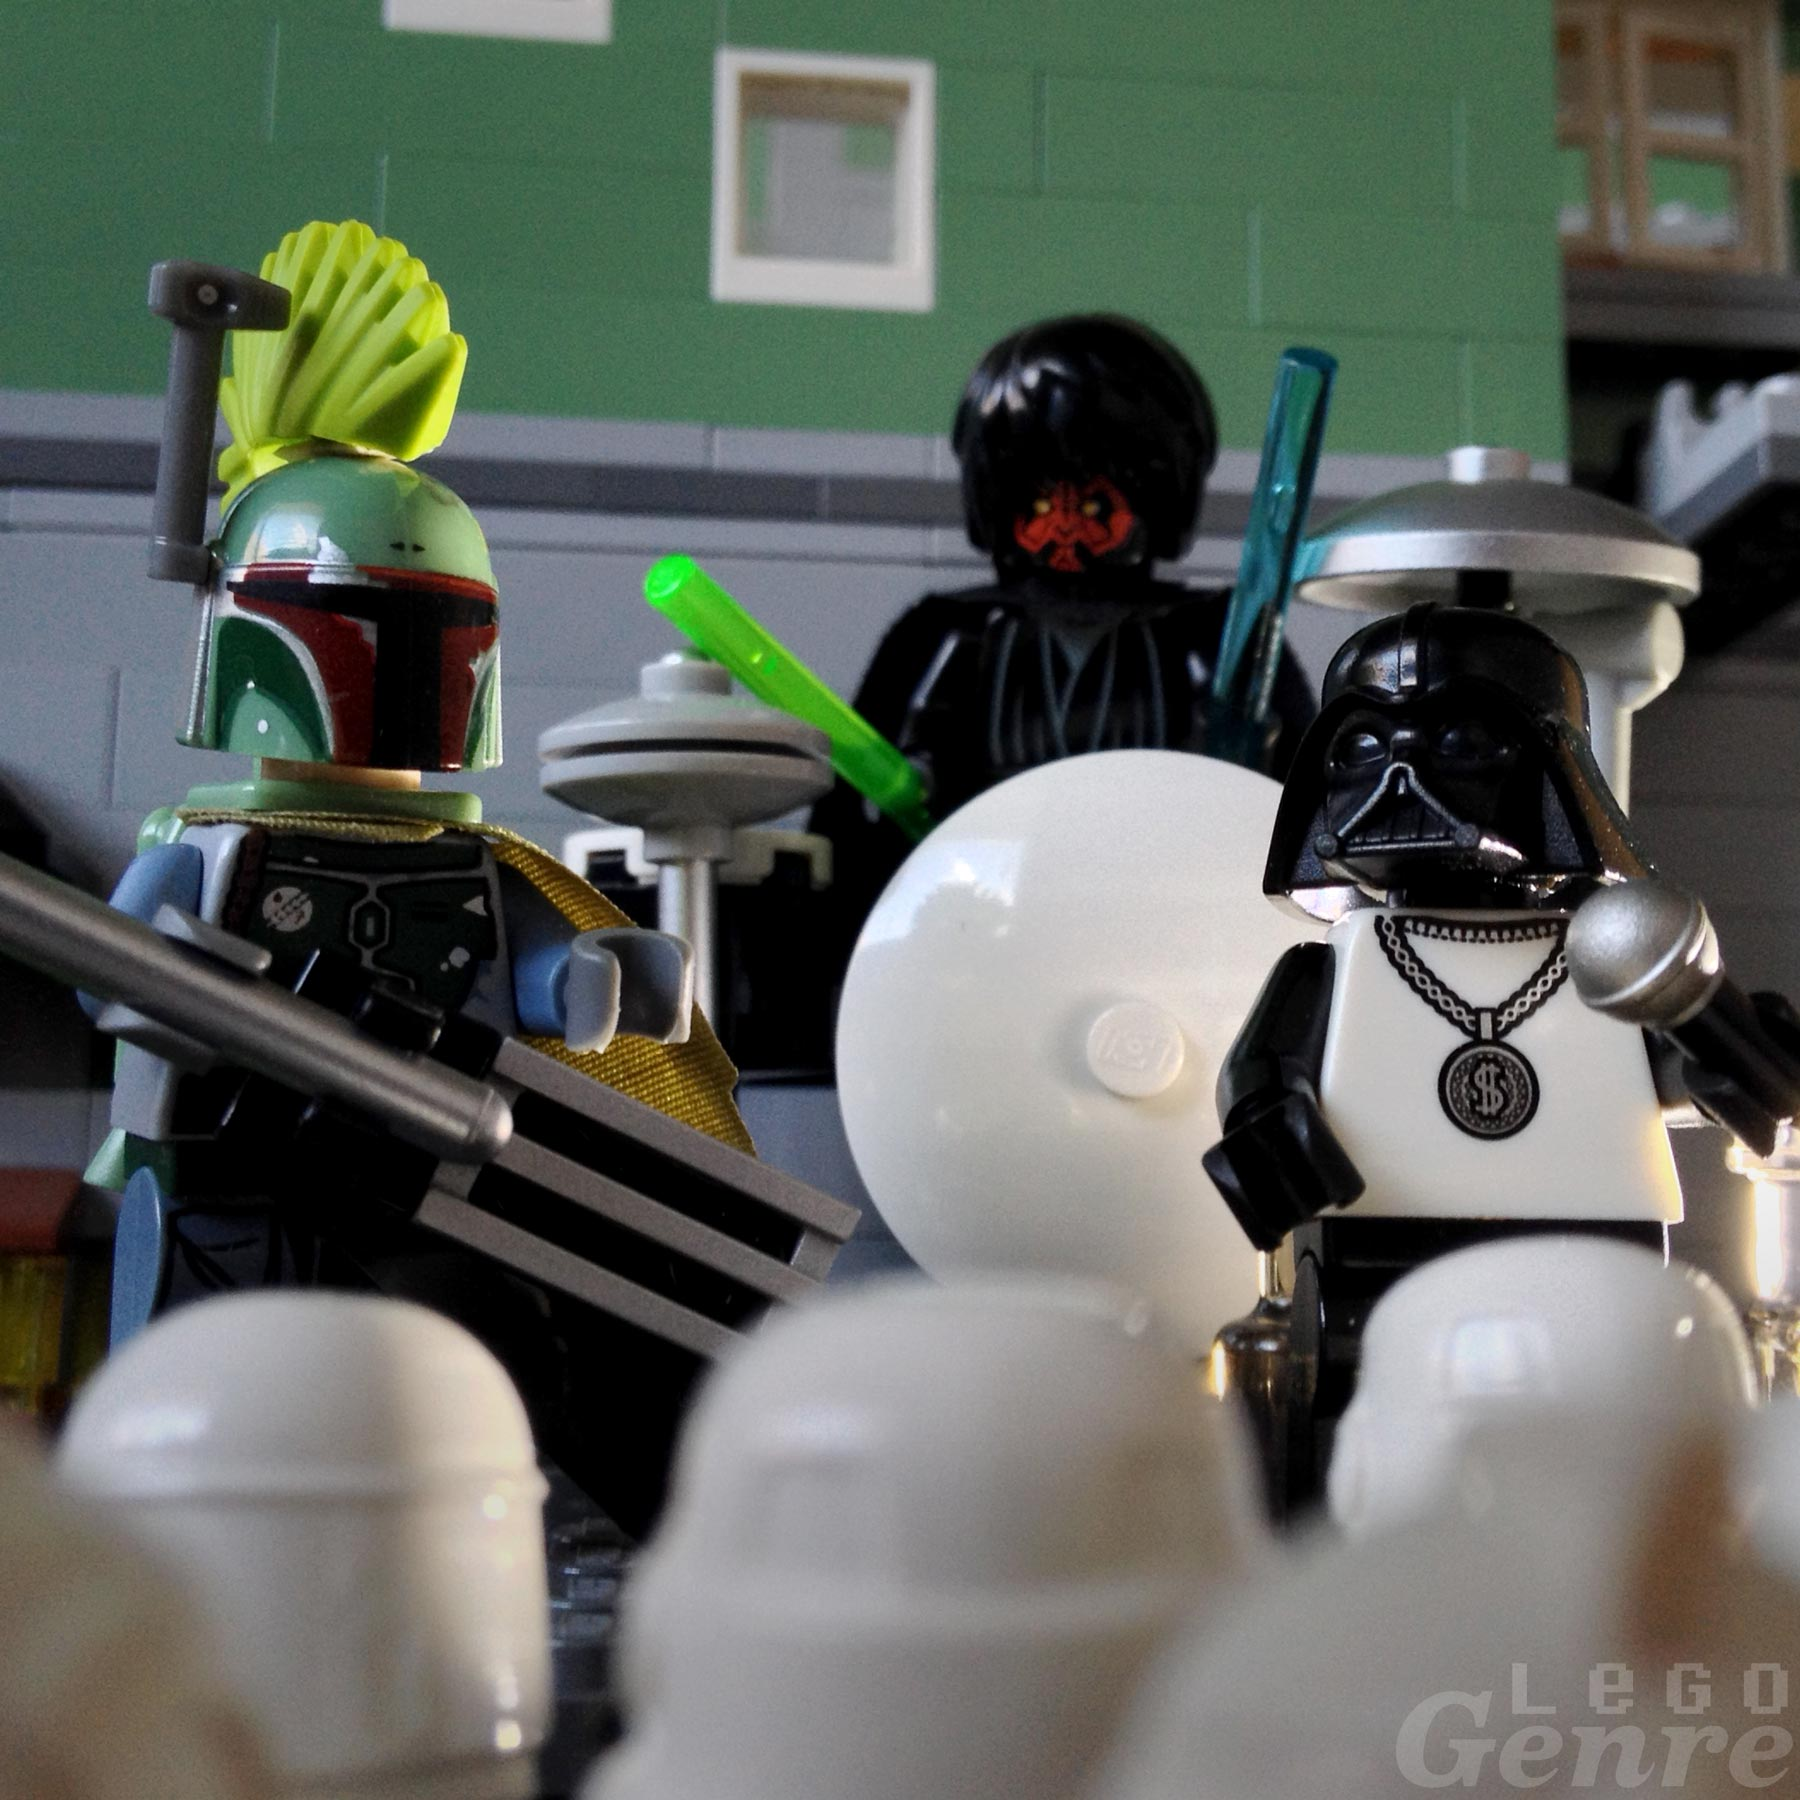 LegoGenre 00340: Darth Vader and the Empires